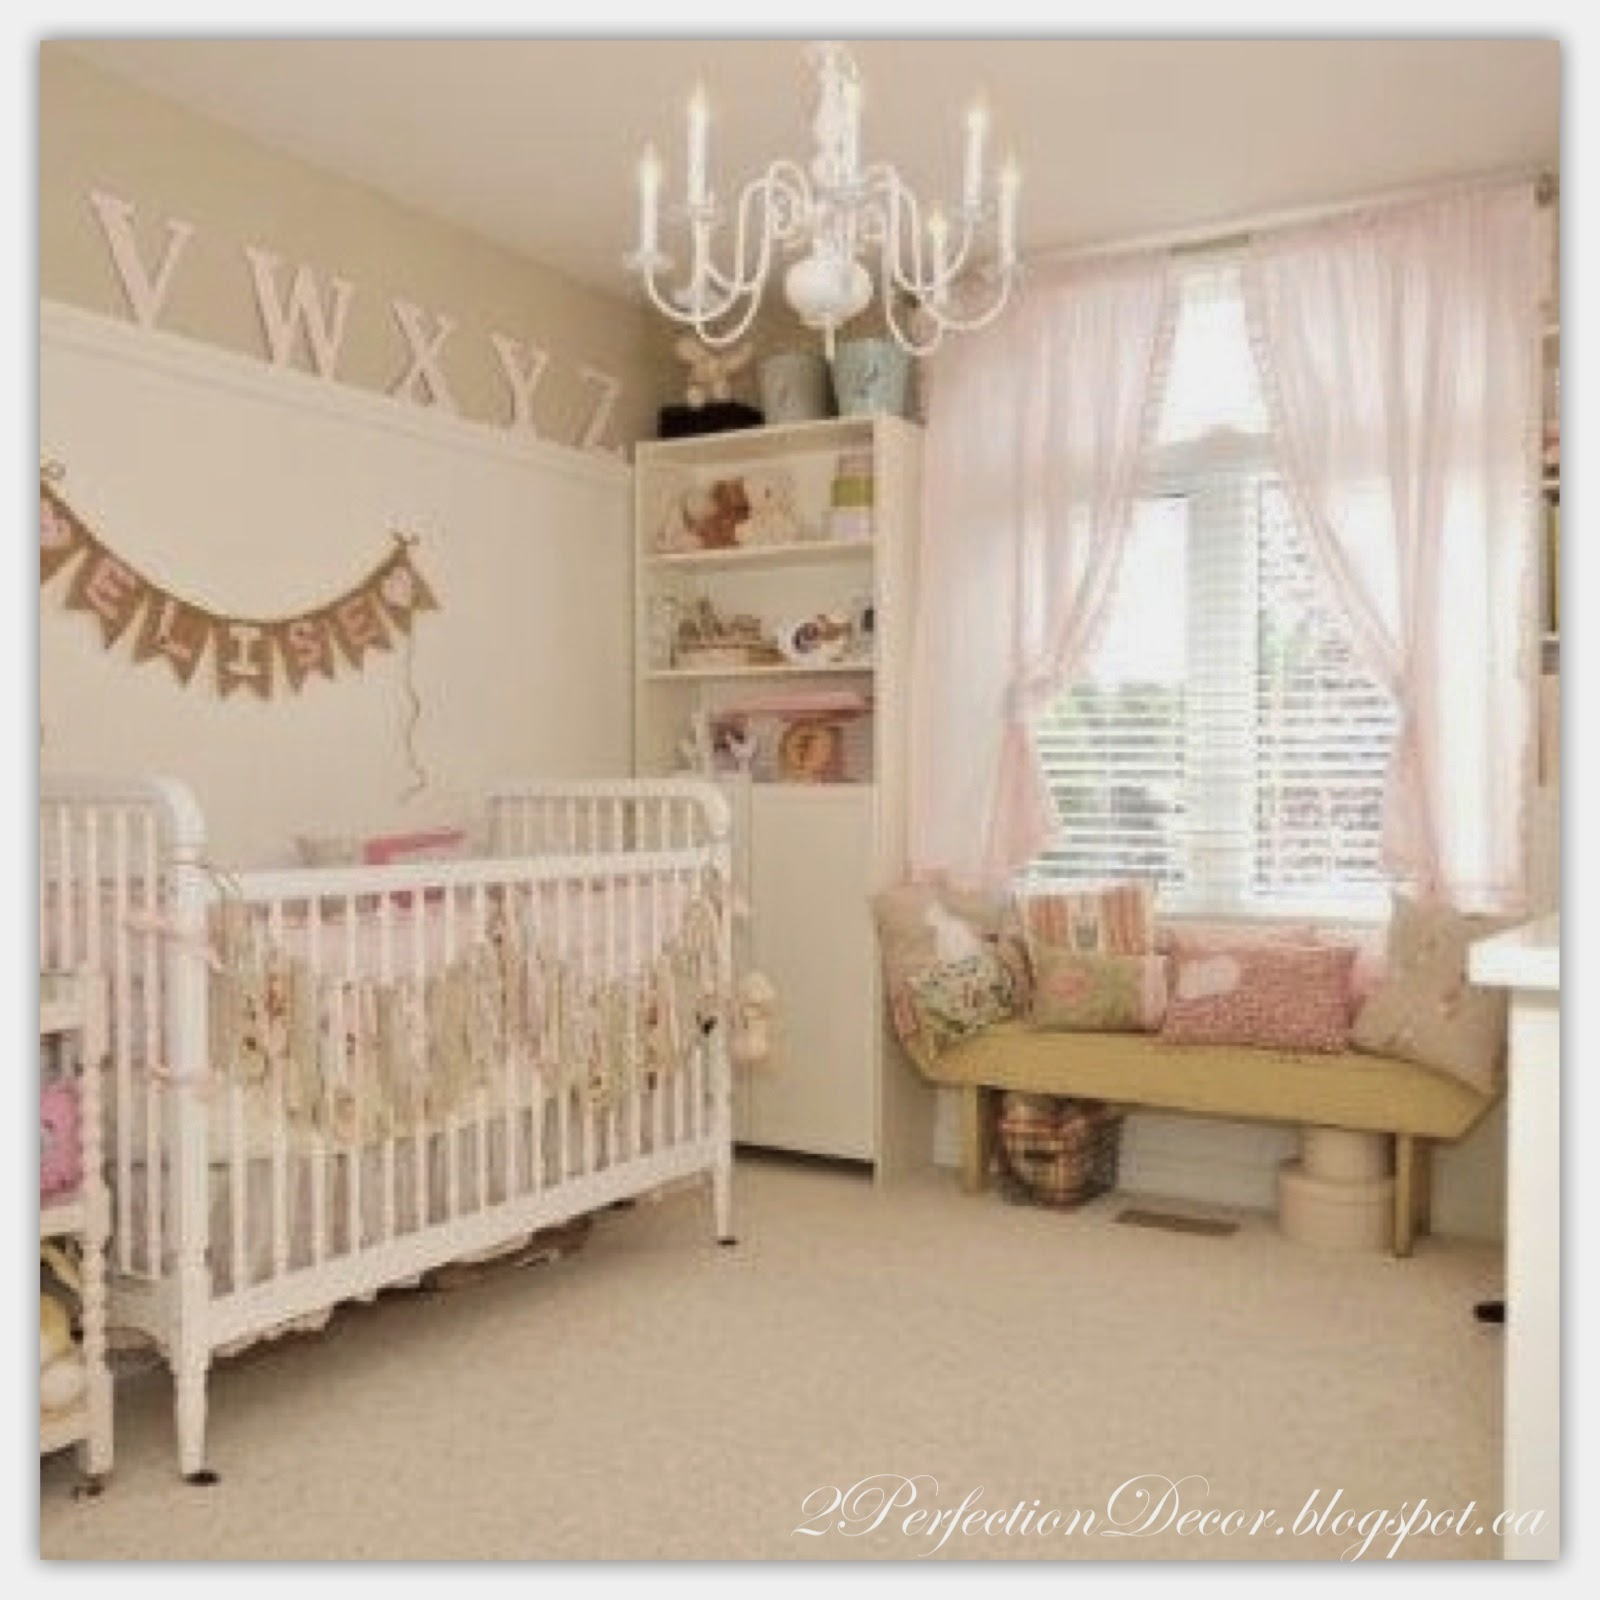 2Perfection Decor: Shabby Chic Nursery Reveal